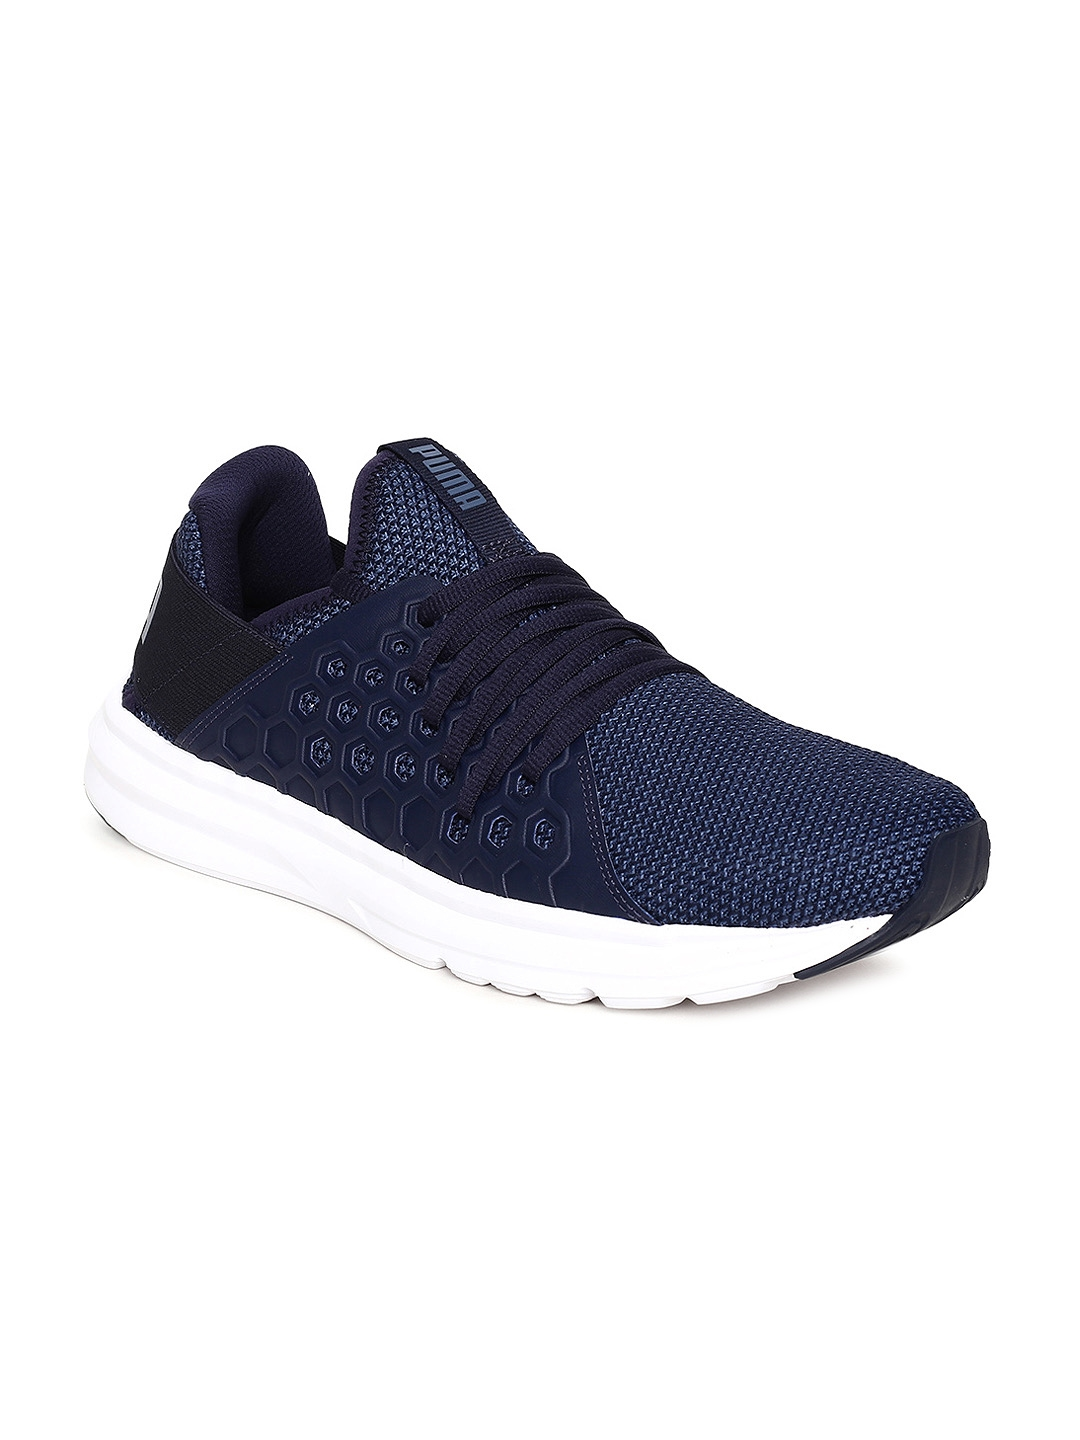 92f01fefafda Buy Puma Men Navy Blue Enzo NF Running Shoes - Sports Shoes for Men ...